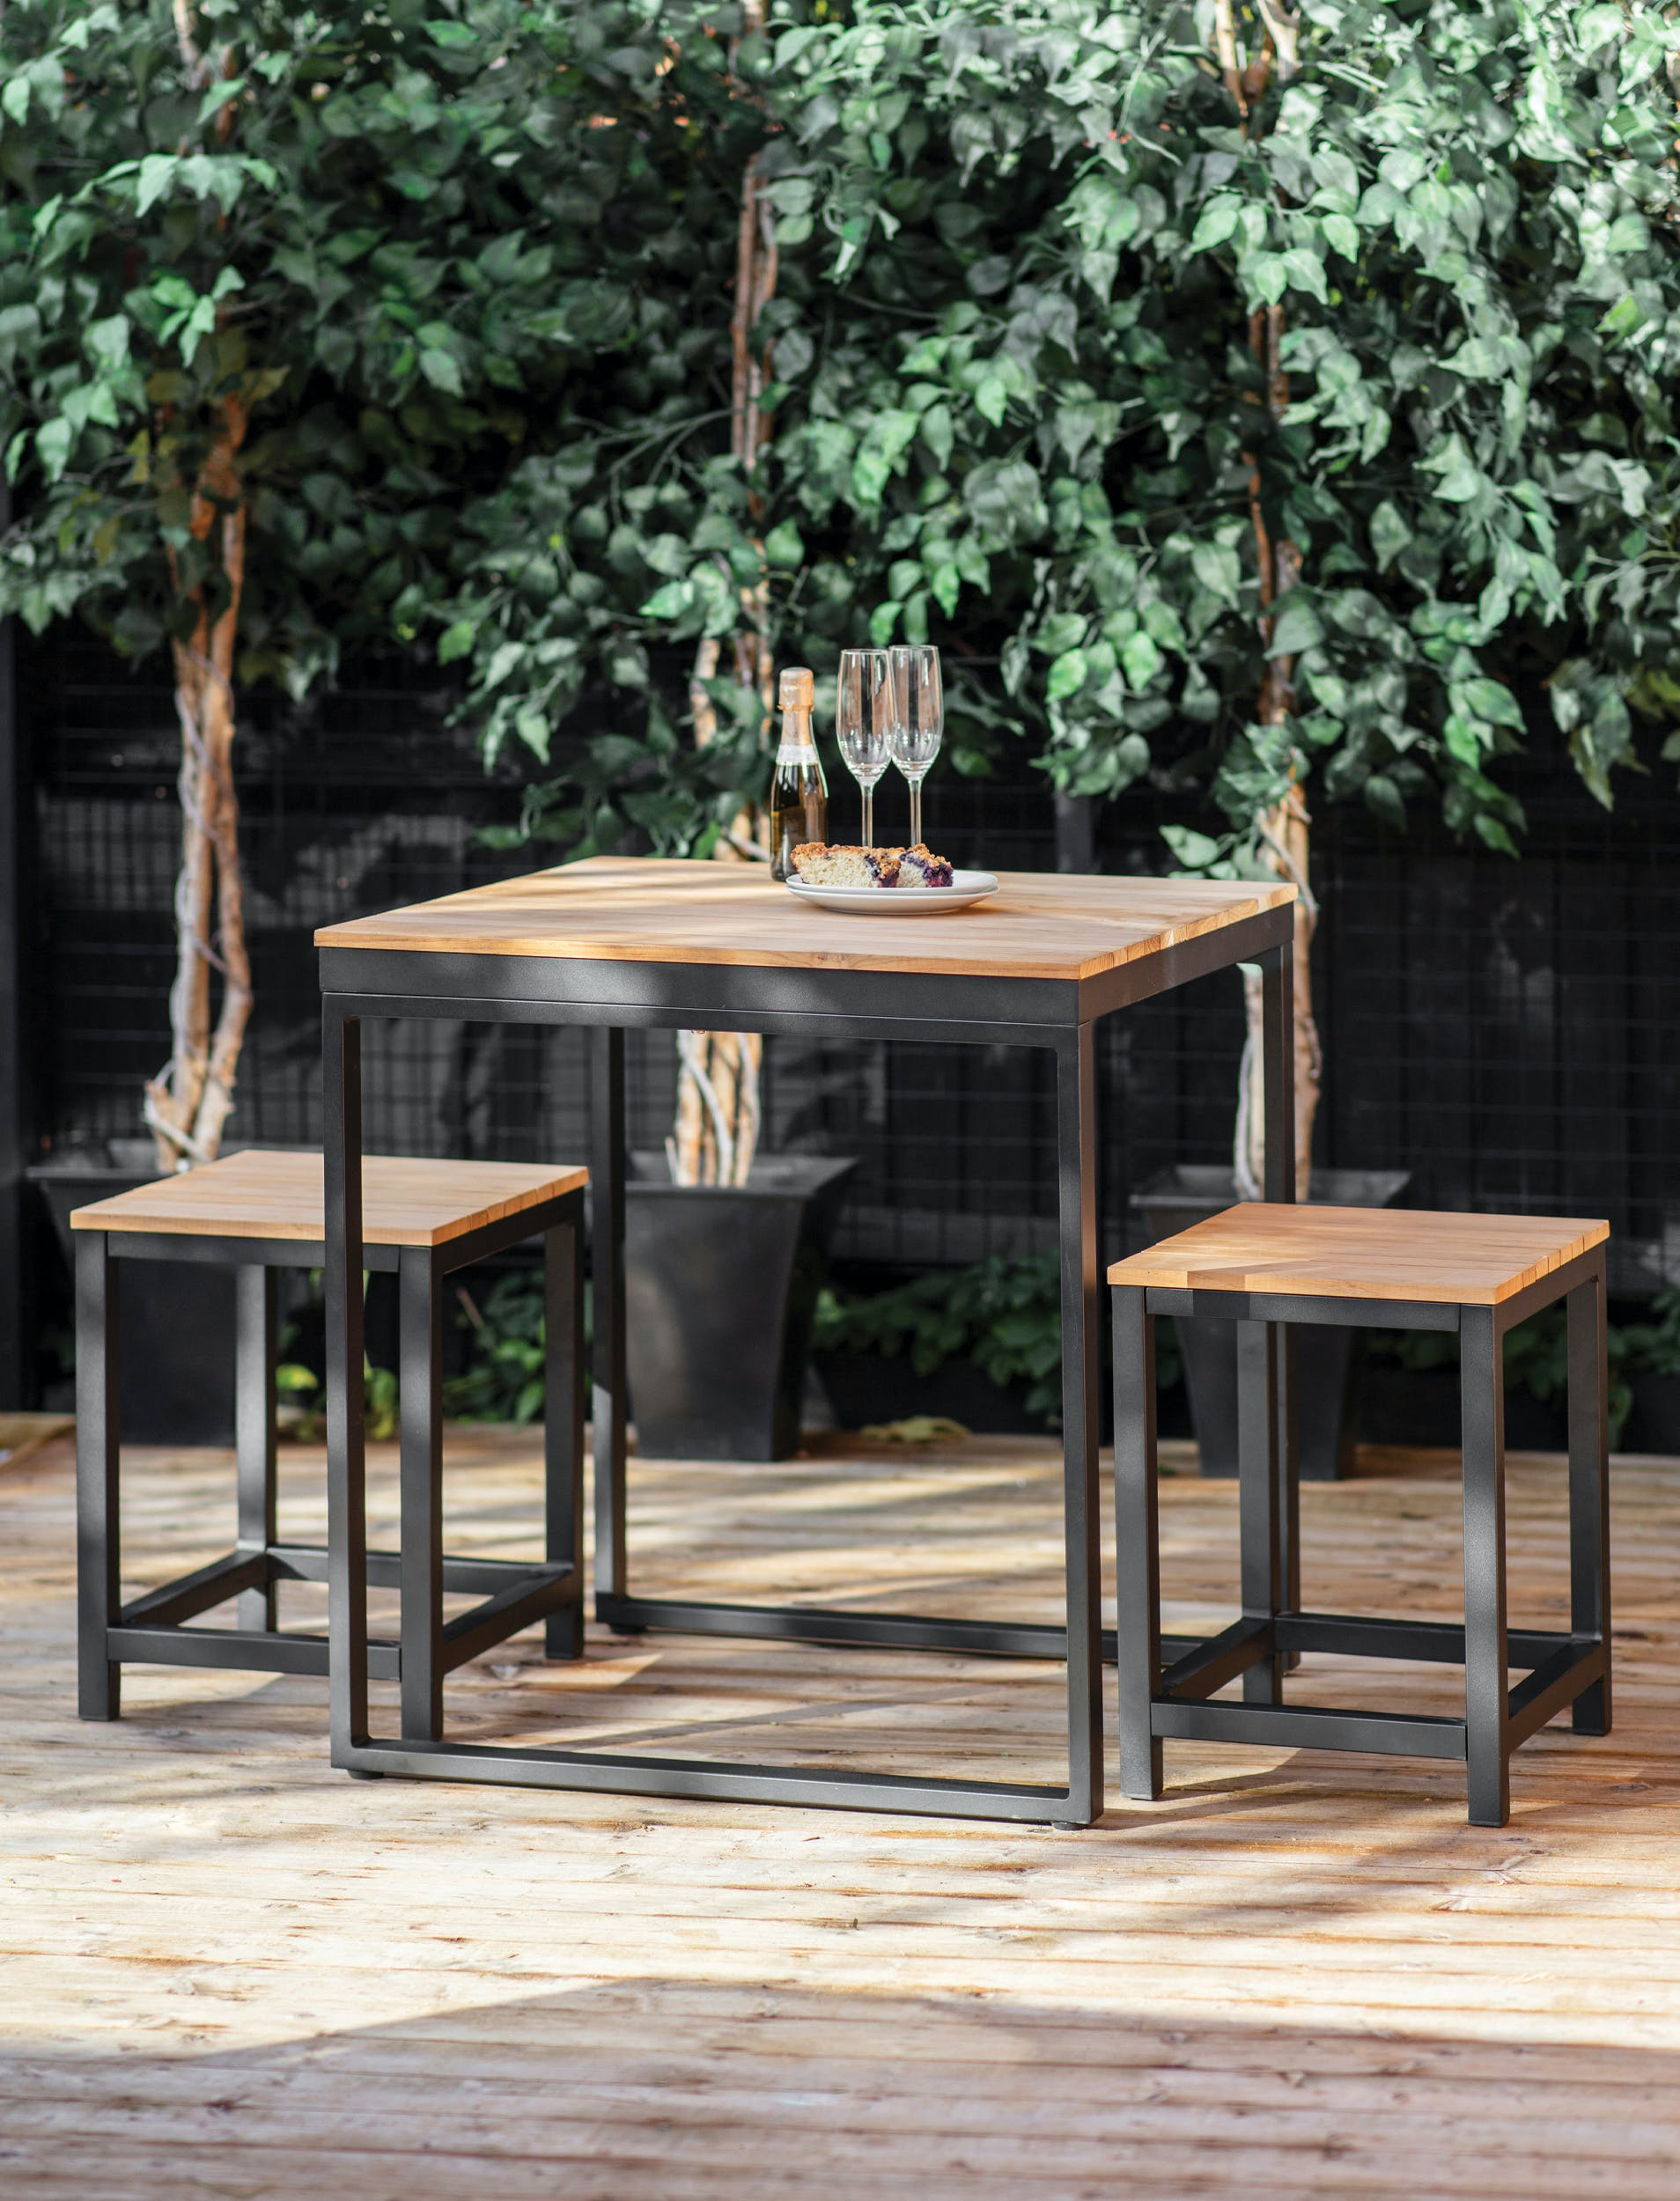 Black Steel And Teak Garden Table And Bench Set The Forest Co